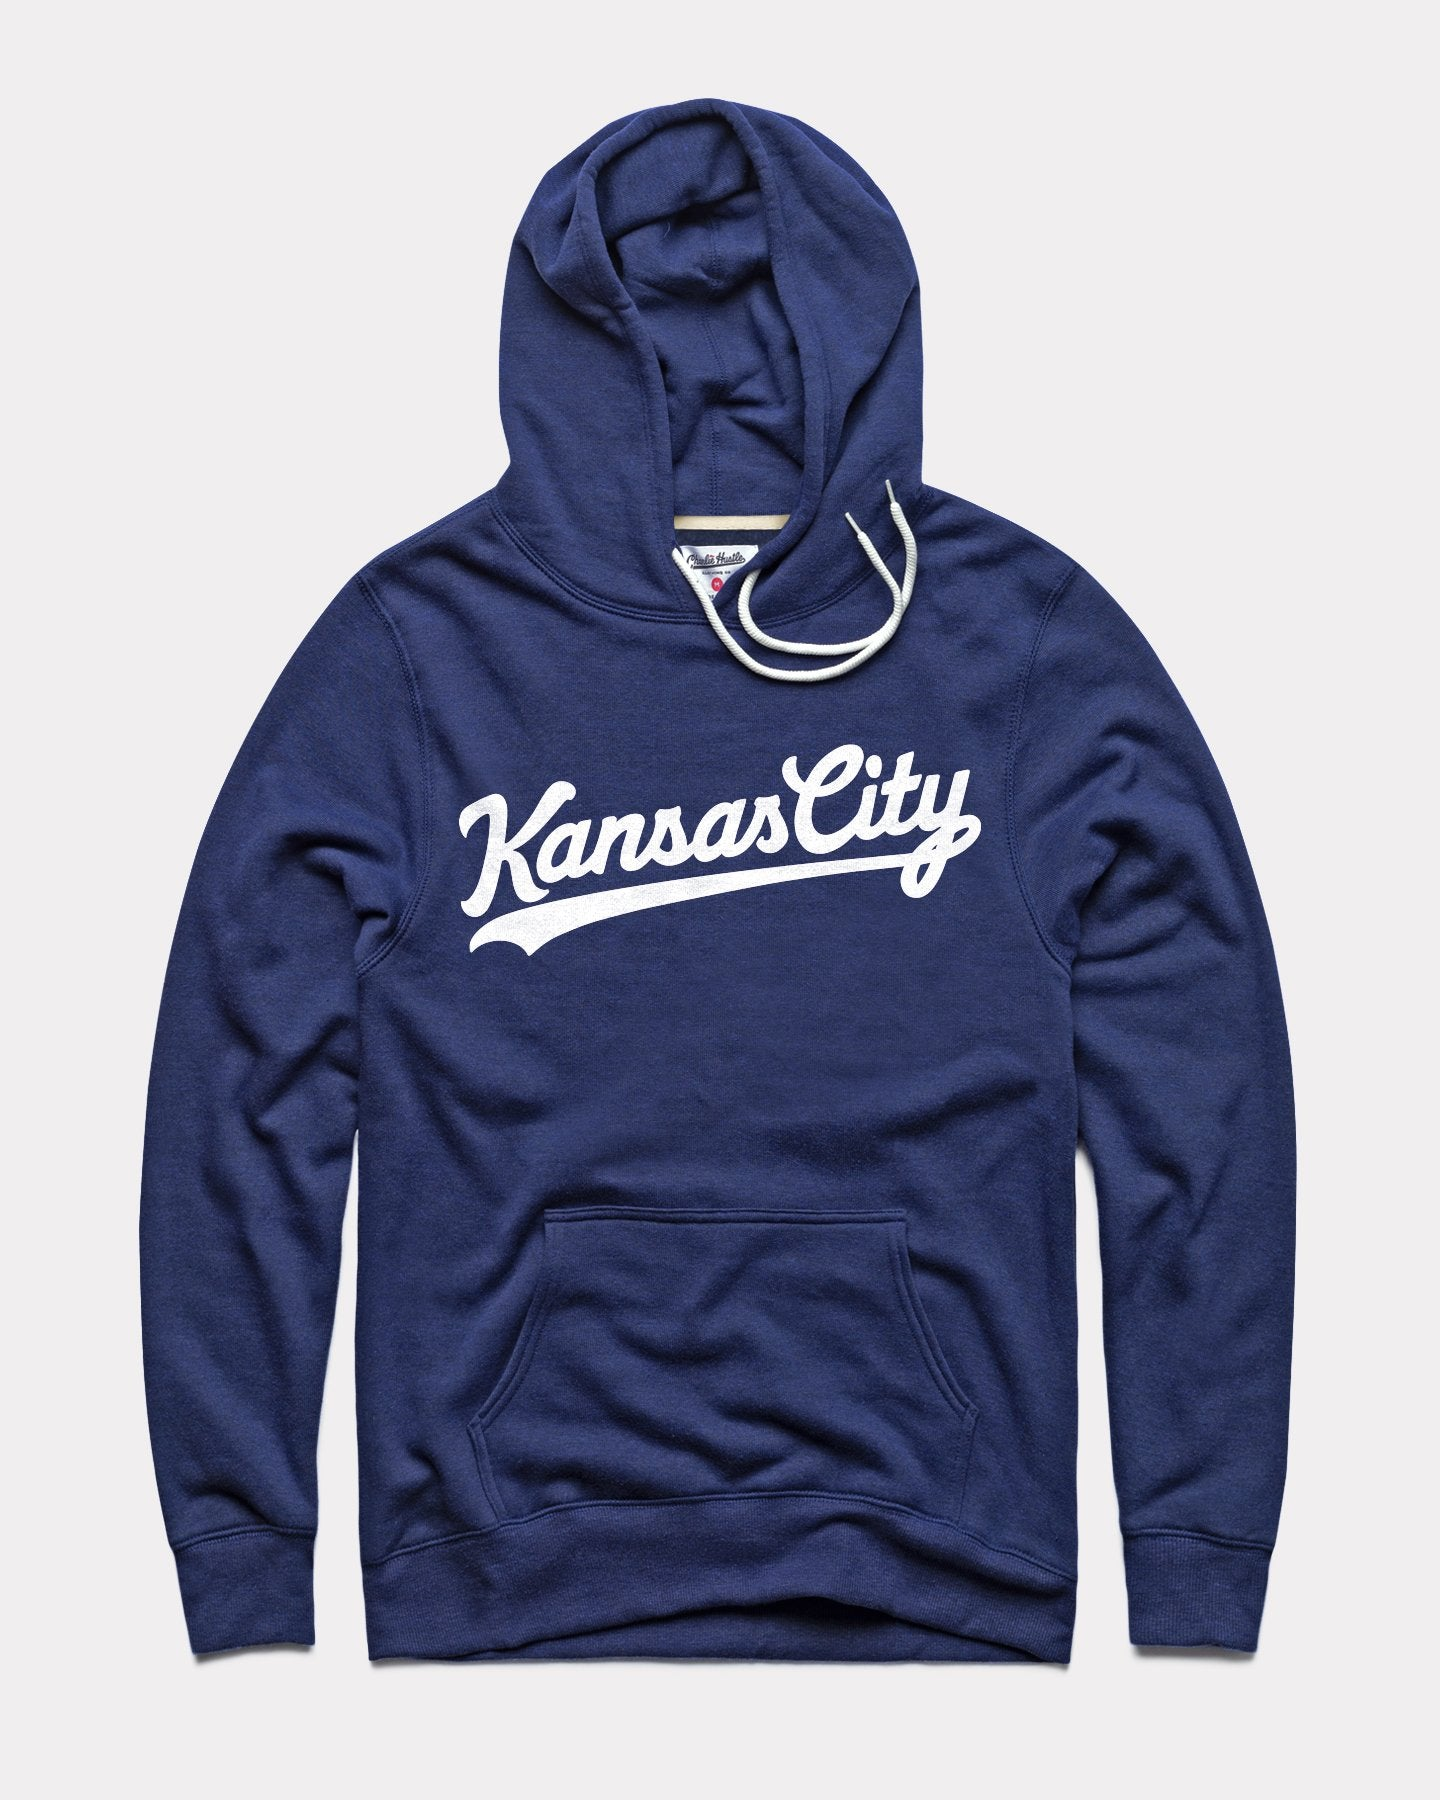 Navy & White Kansas City Script Vintage Hoodie Sweatshirt